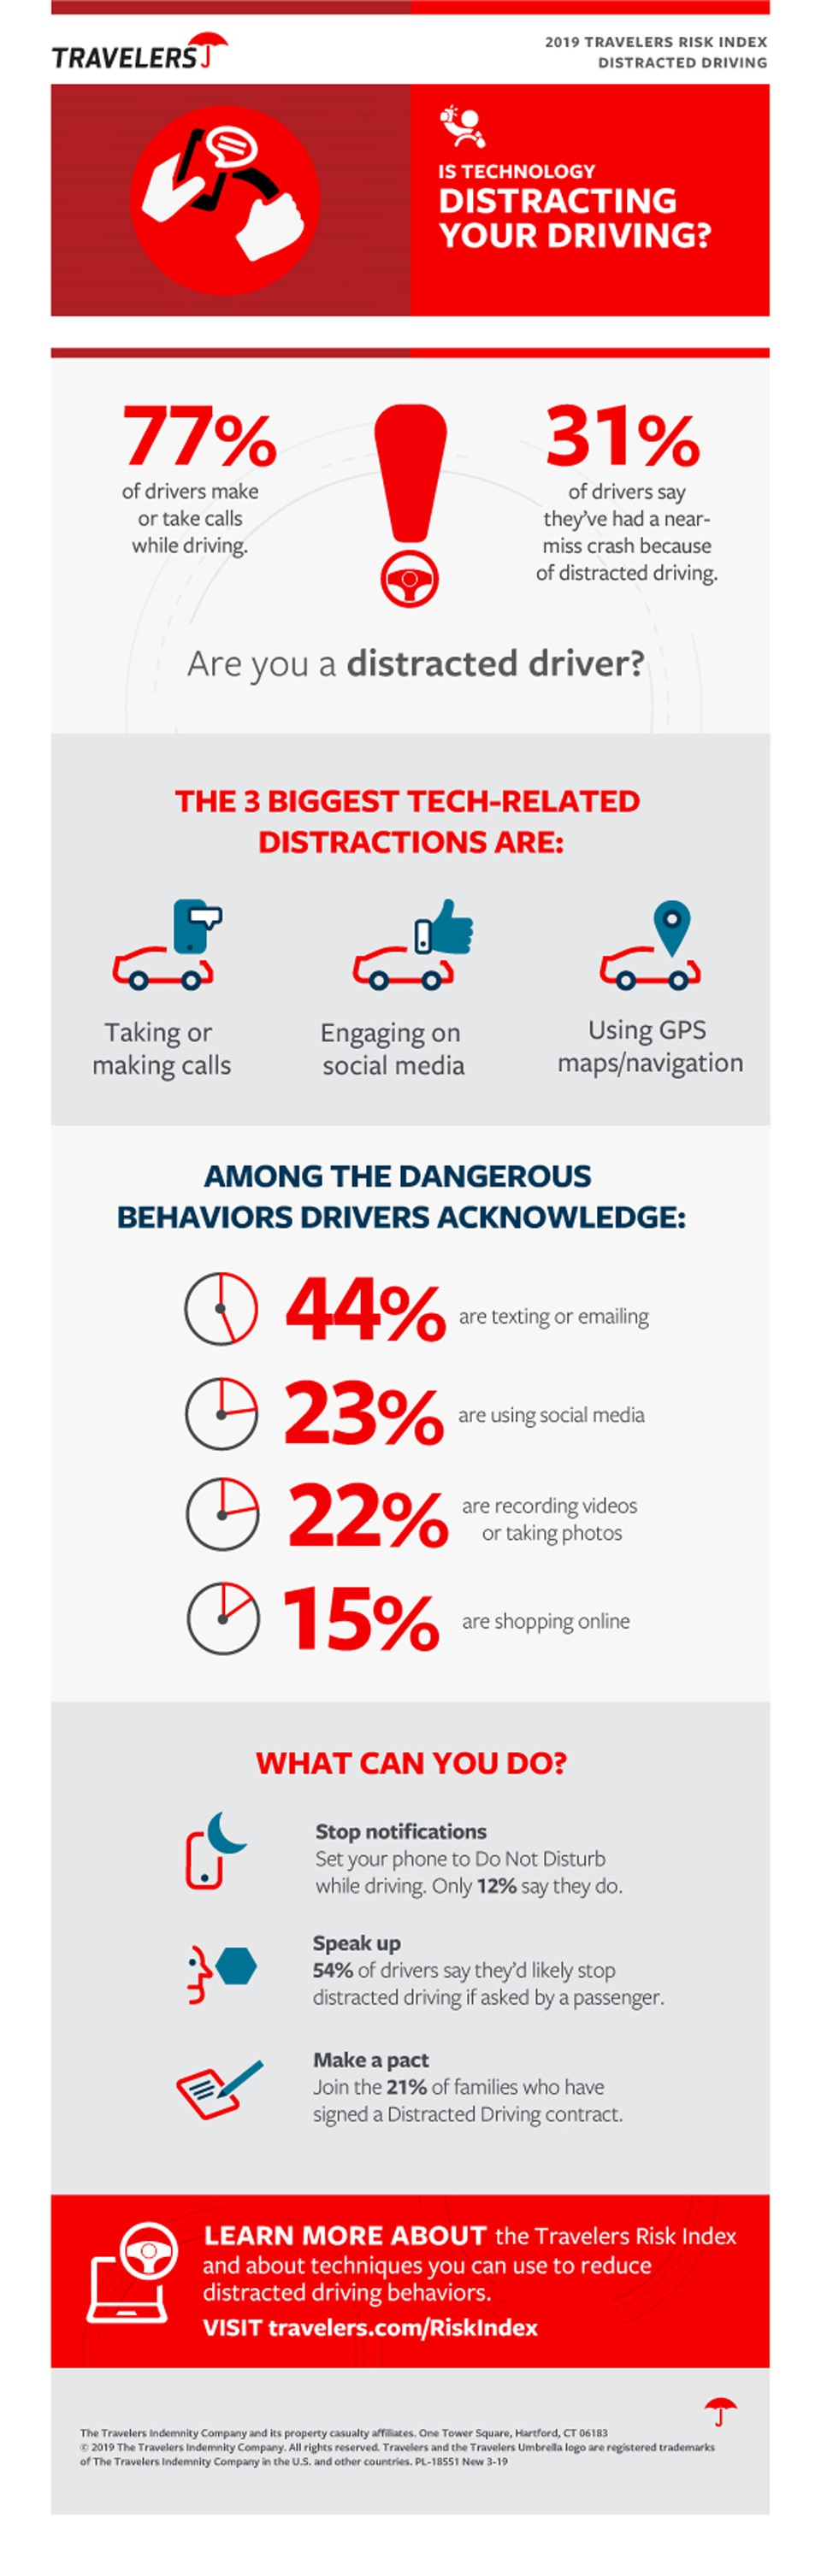 2019 Distracted Driving for Consumers [Infographic]